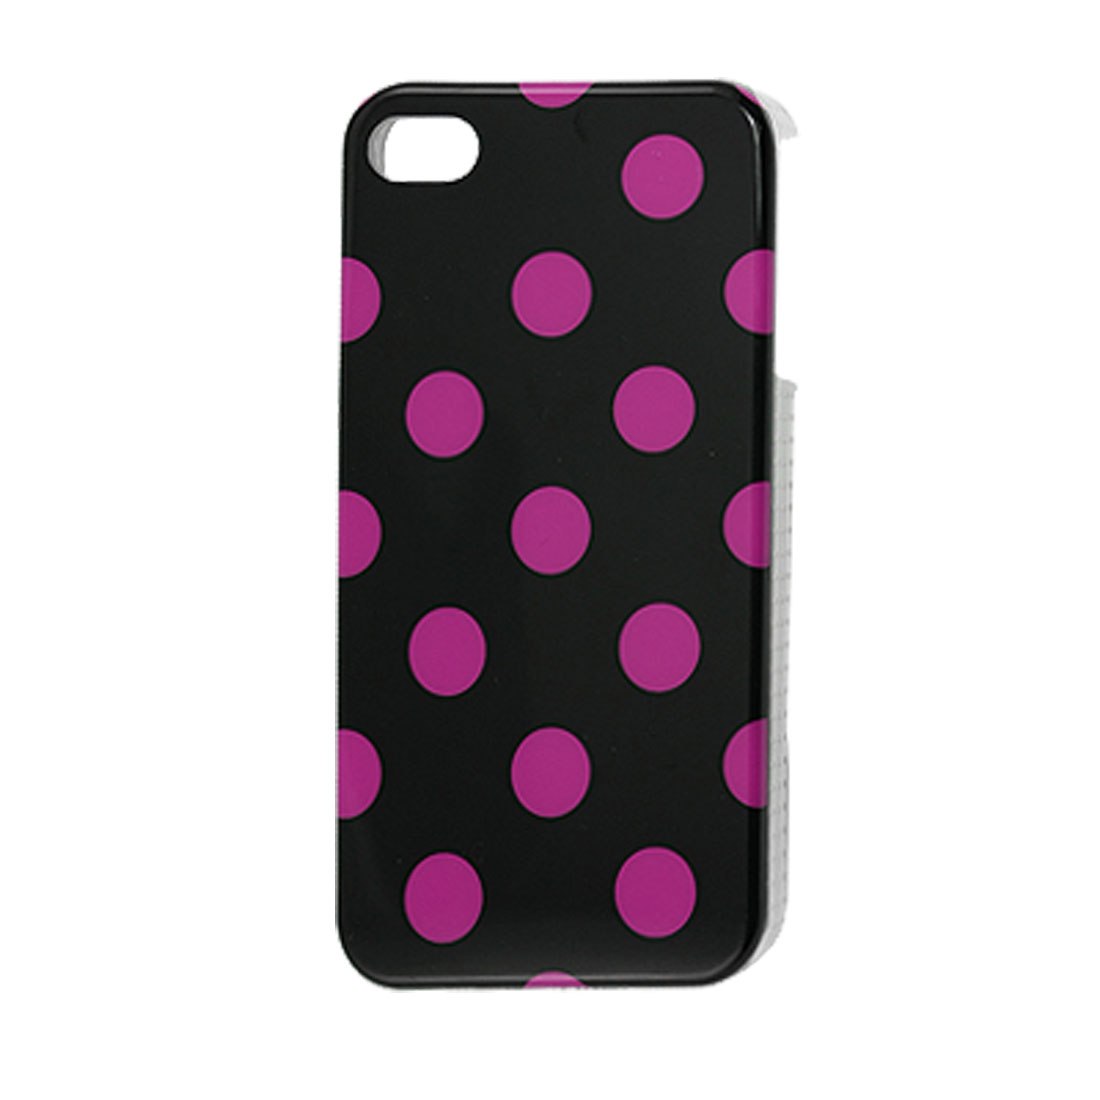 Fuchsia Dotted Black Hard Plastic IMD Back Case for iPhone 4 4G 4S